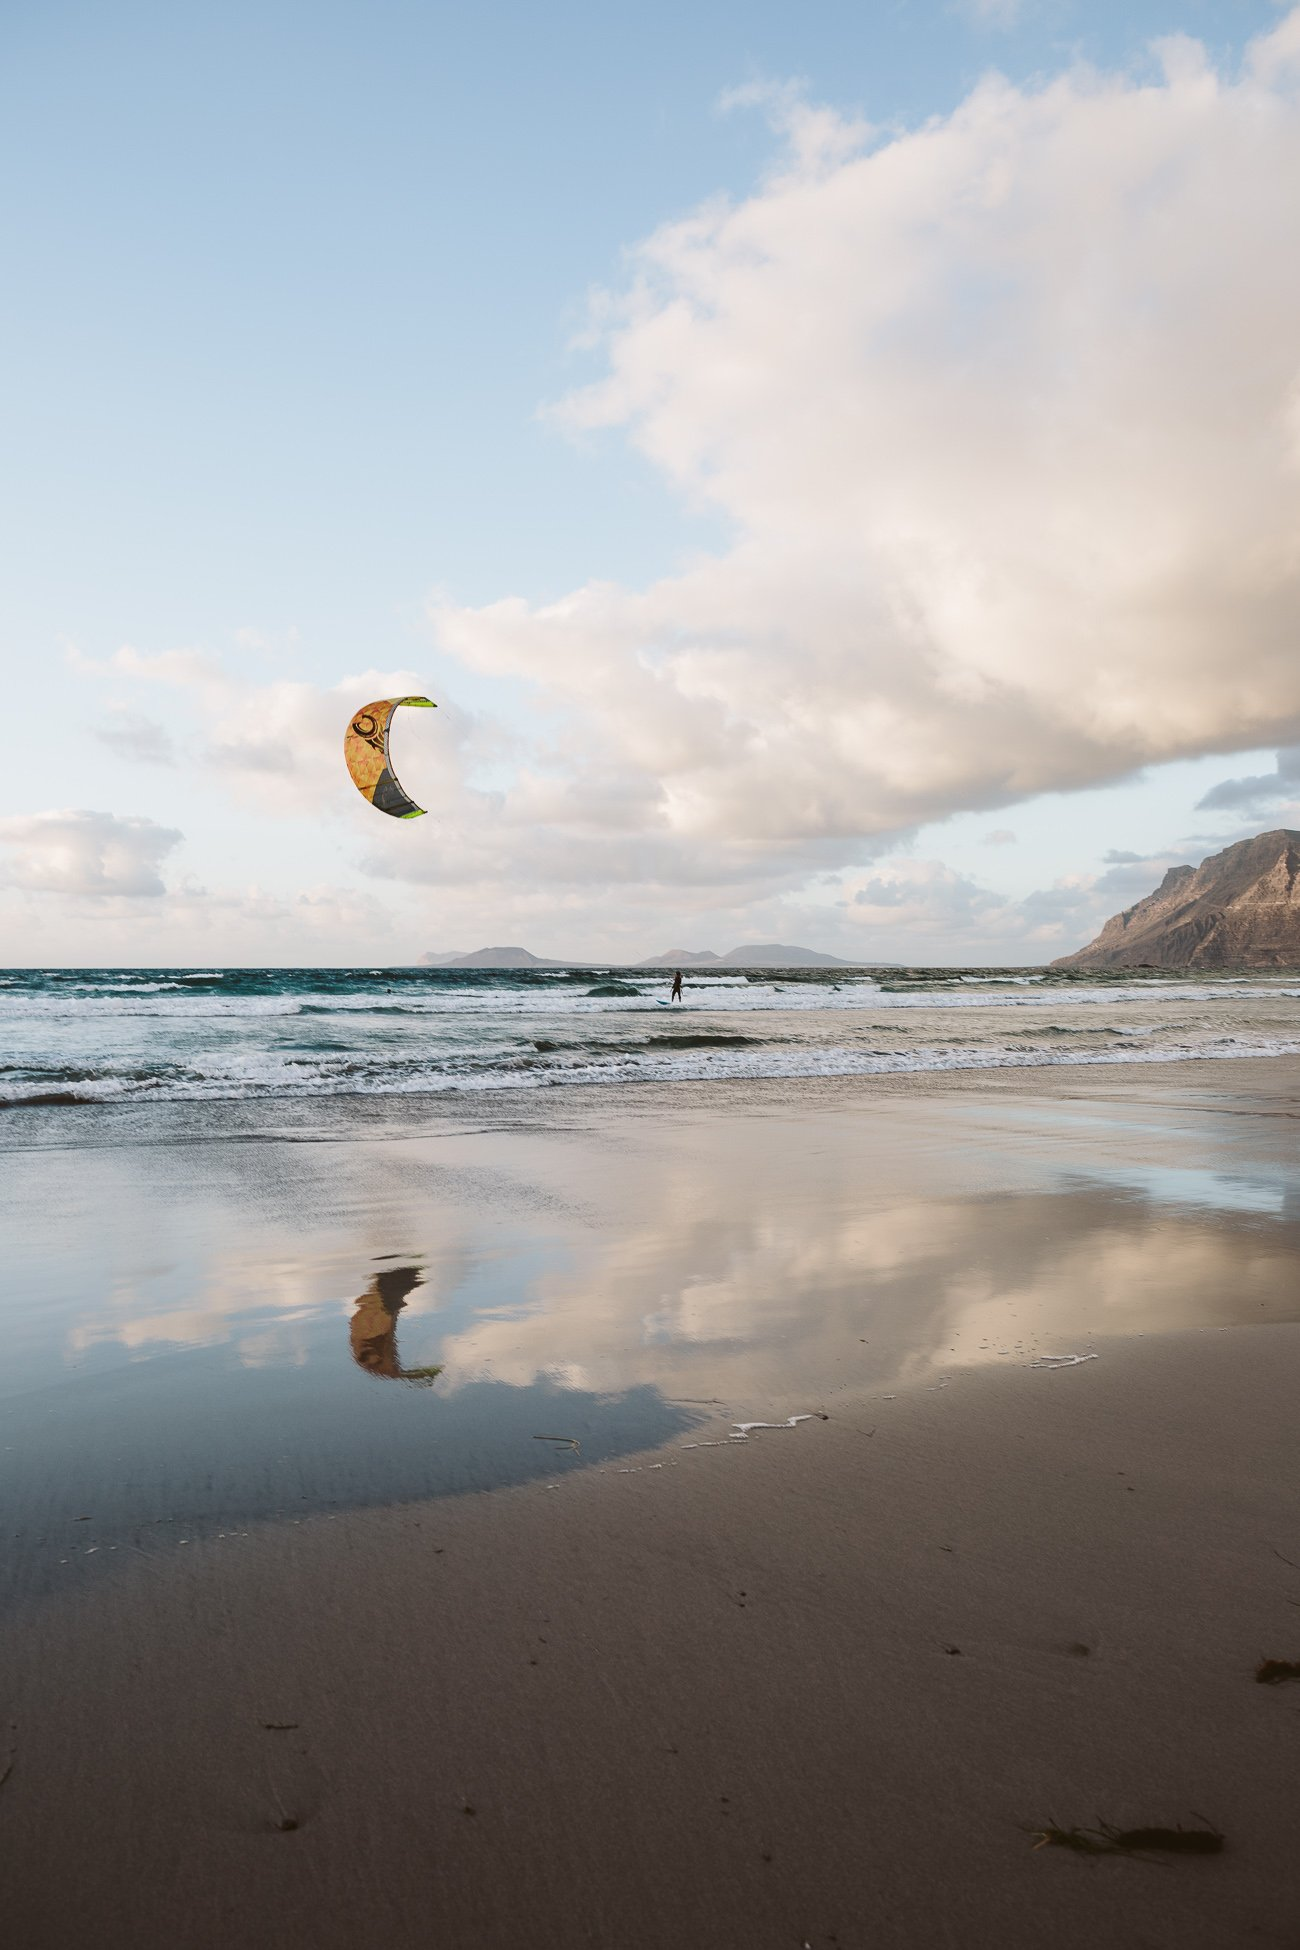 Kite surfer at Famara beach Lanzarote